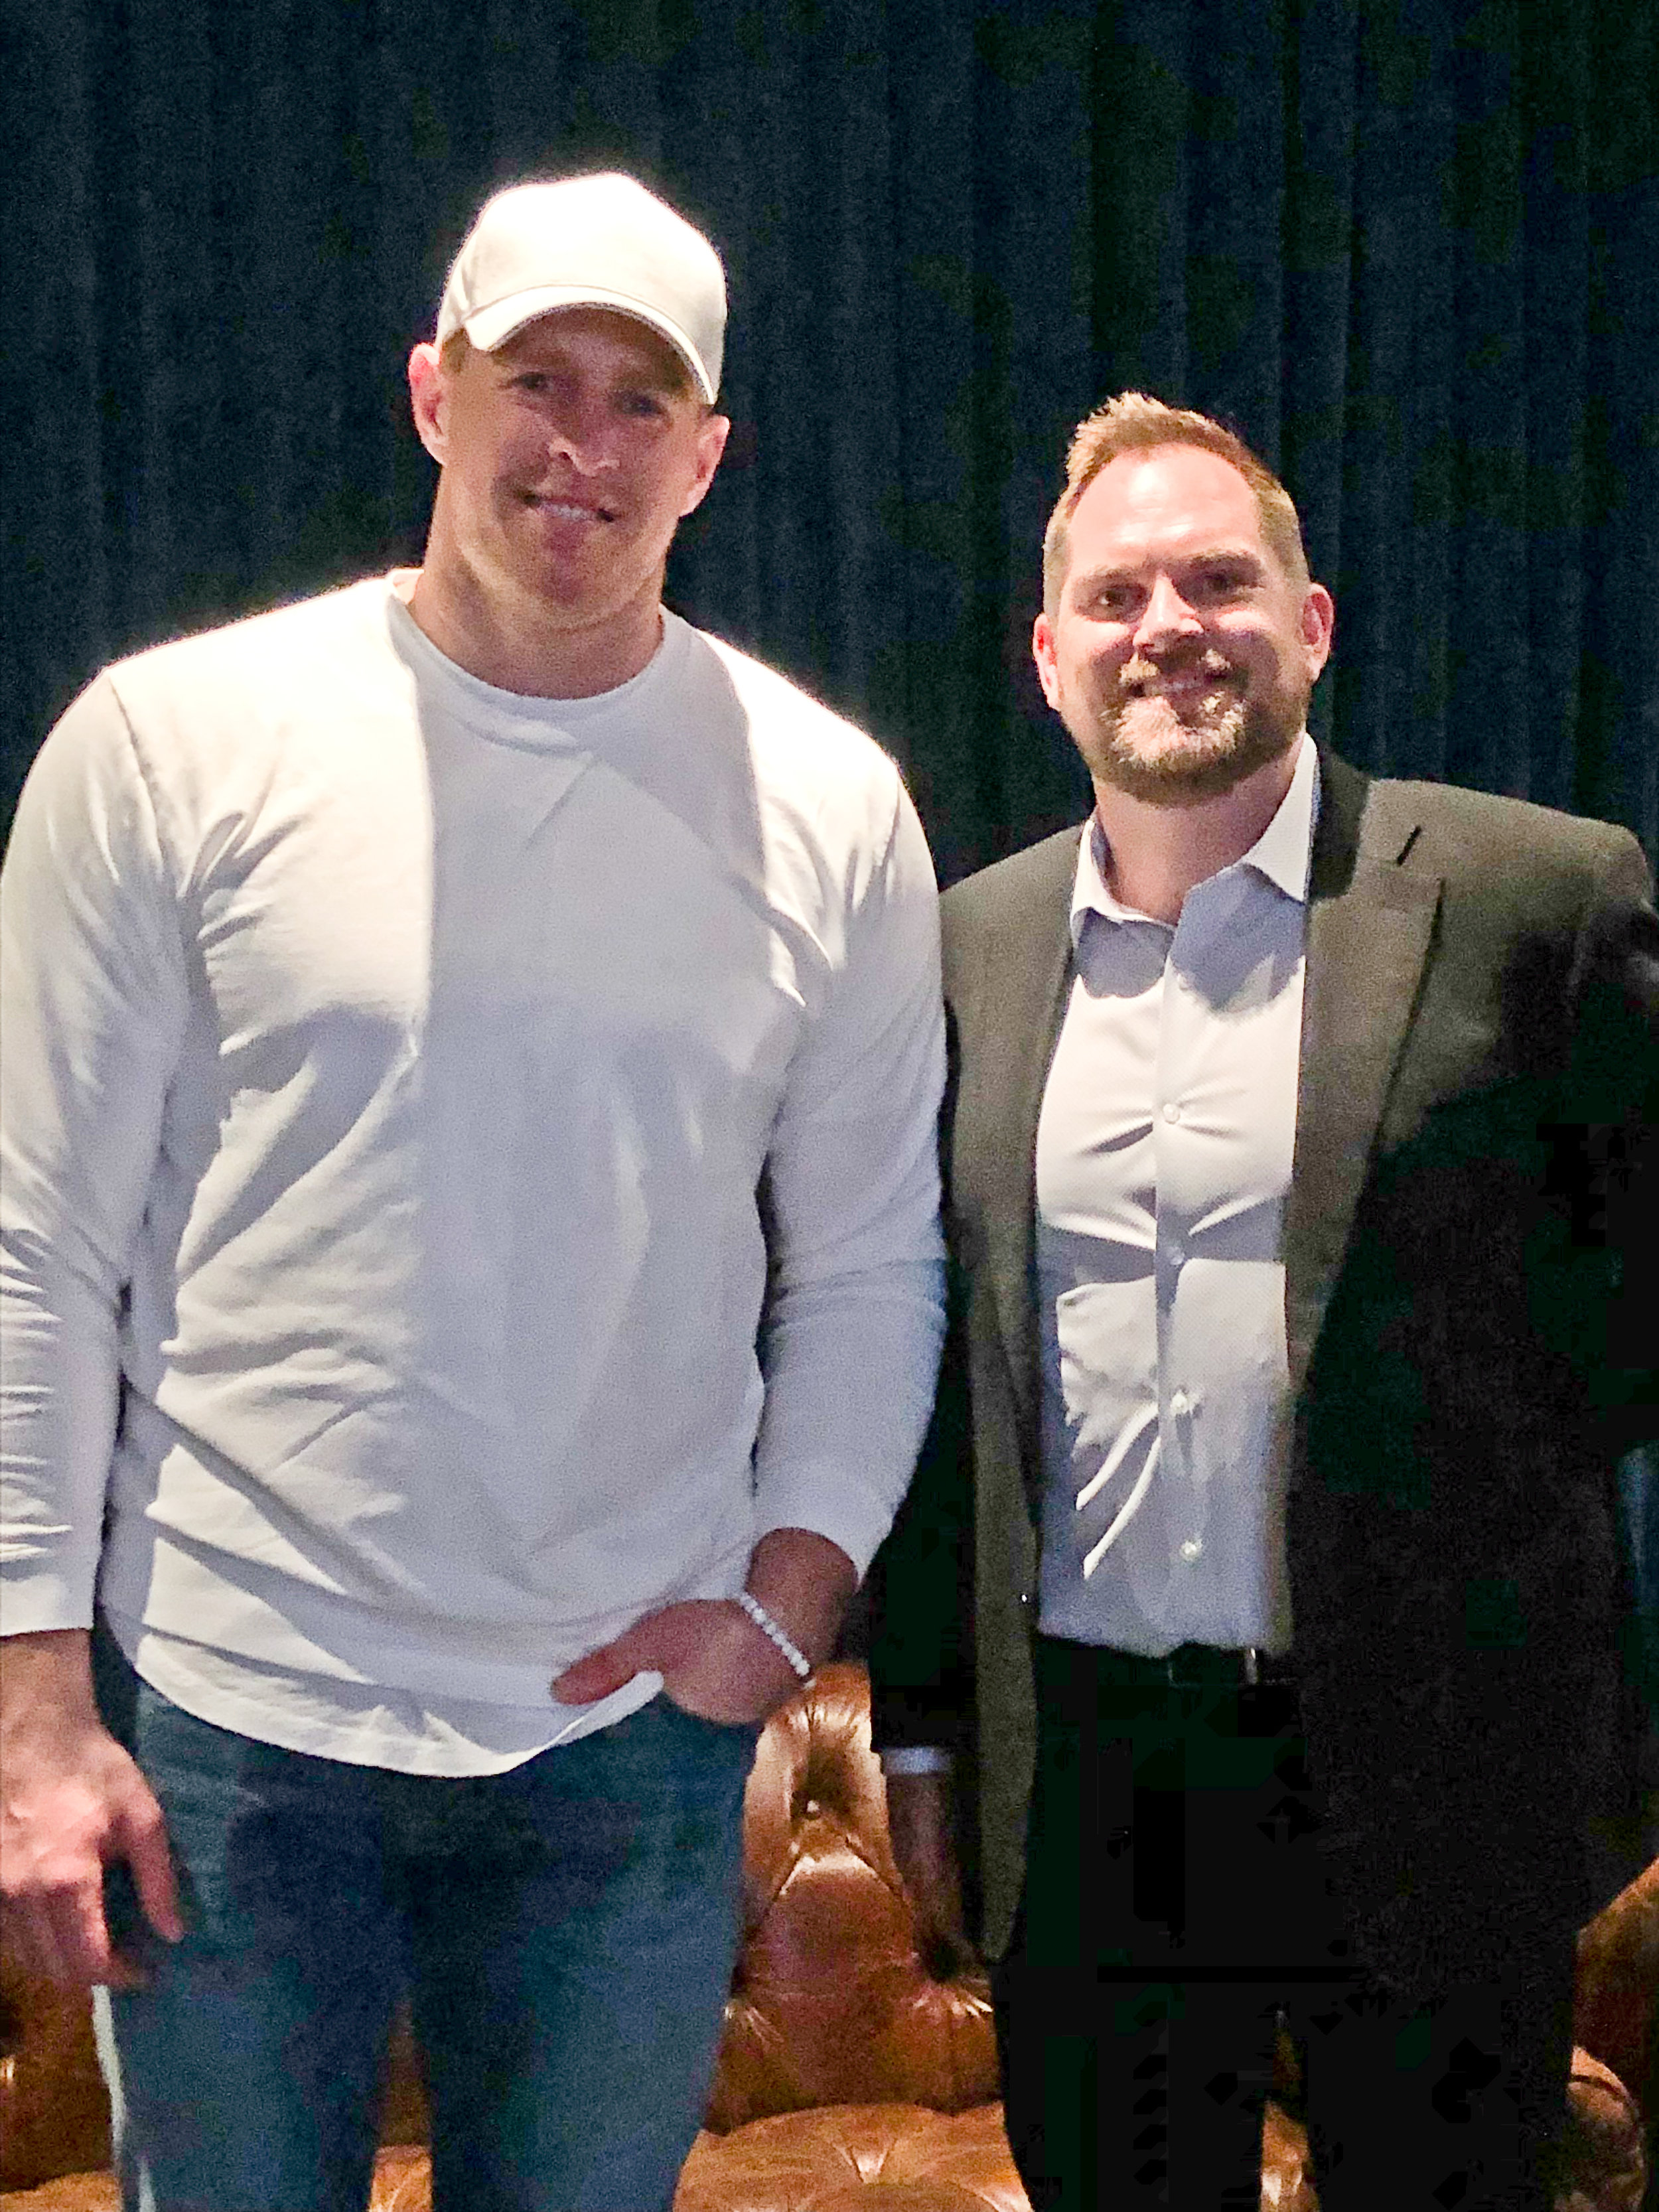 Proud to partner with JJ Watt and GAF